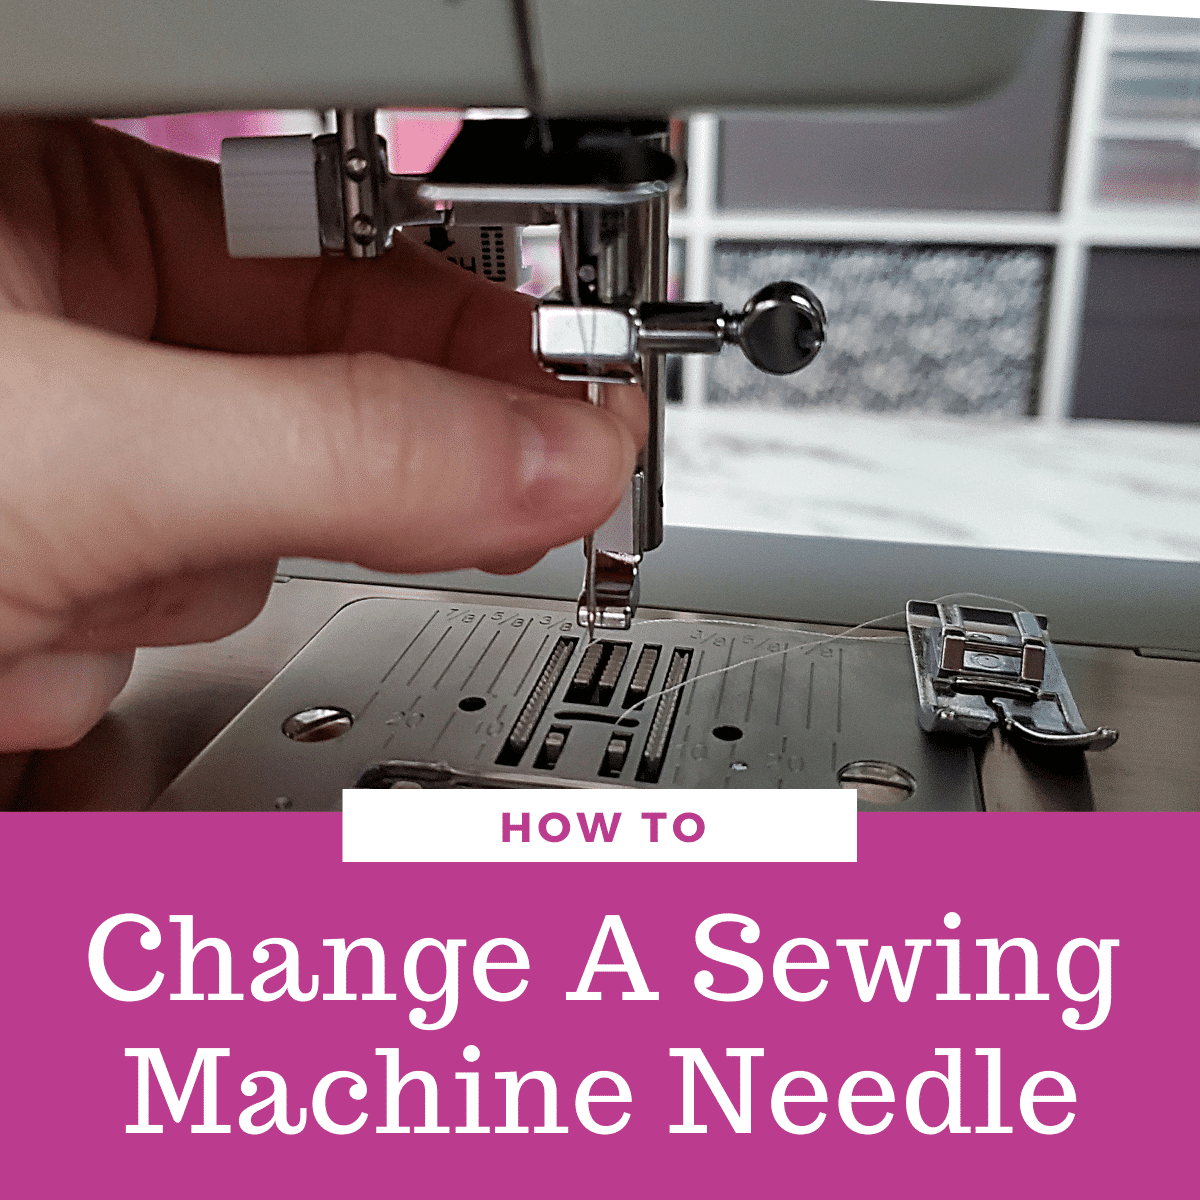 How to Change a Needle on a Sewing Machine